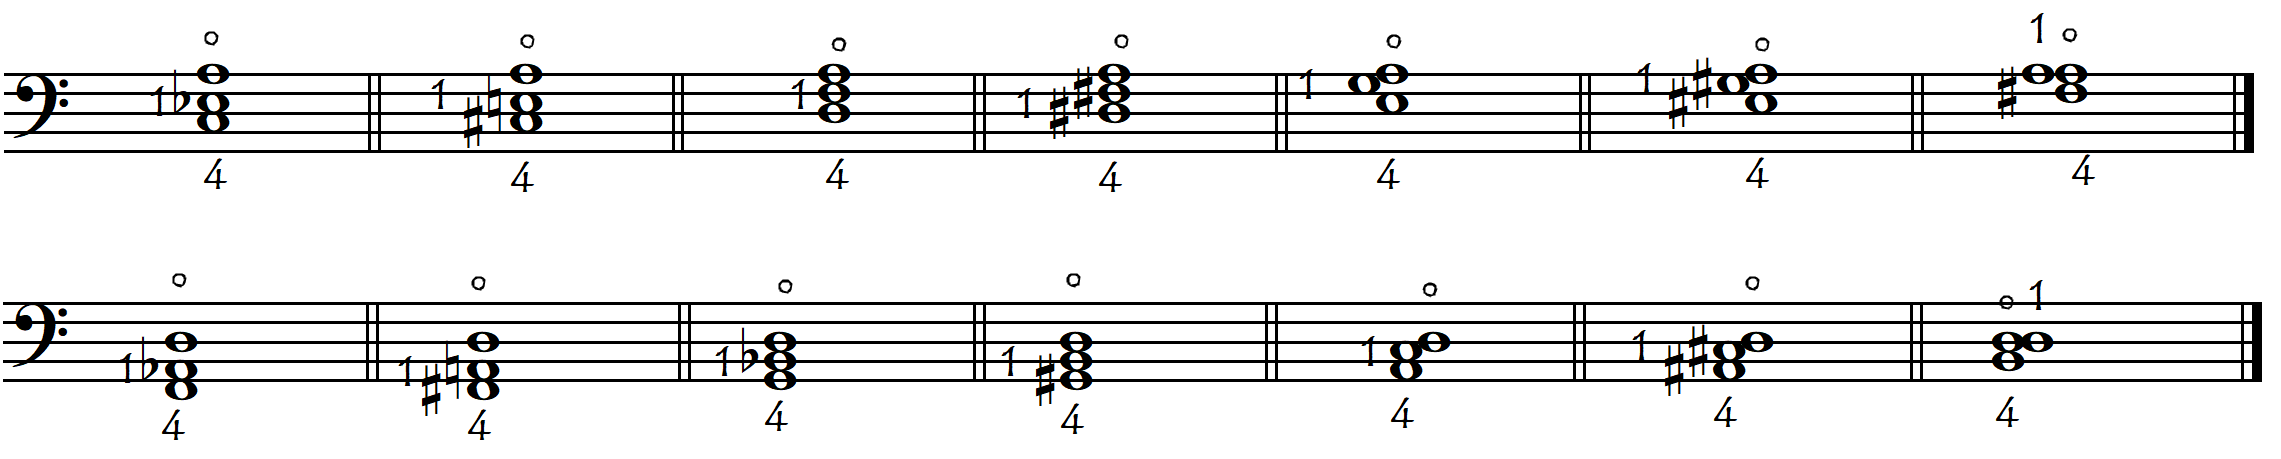 higher open 1 middle 4x lower CHORDS